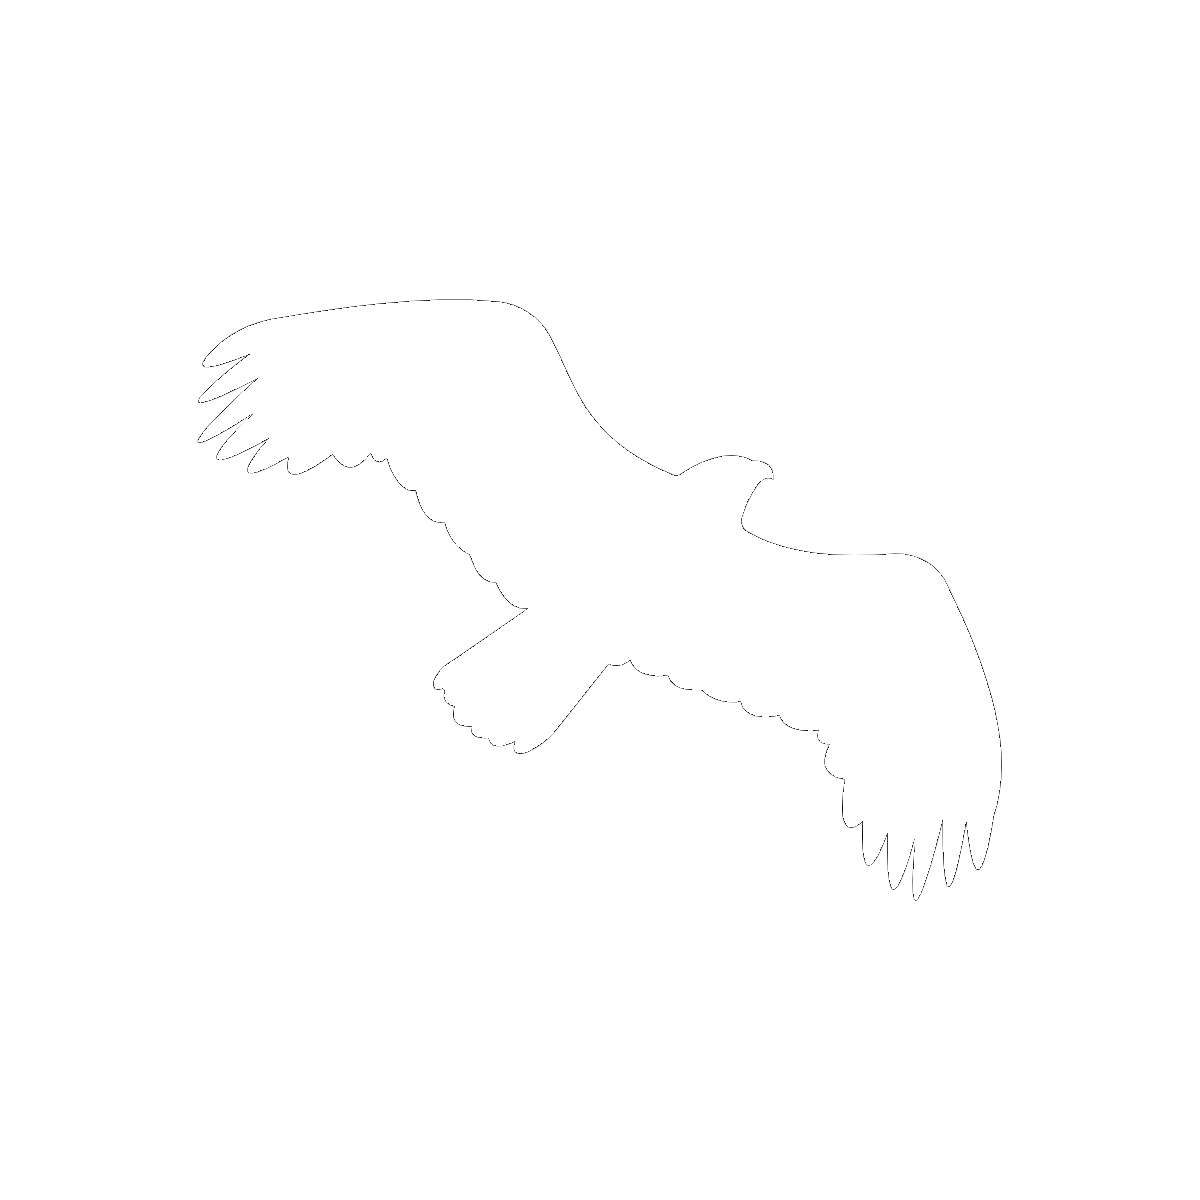 Symbol The Windhover